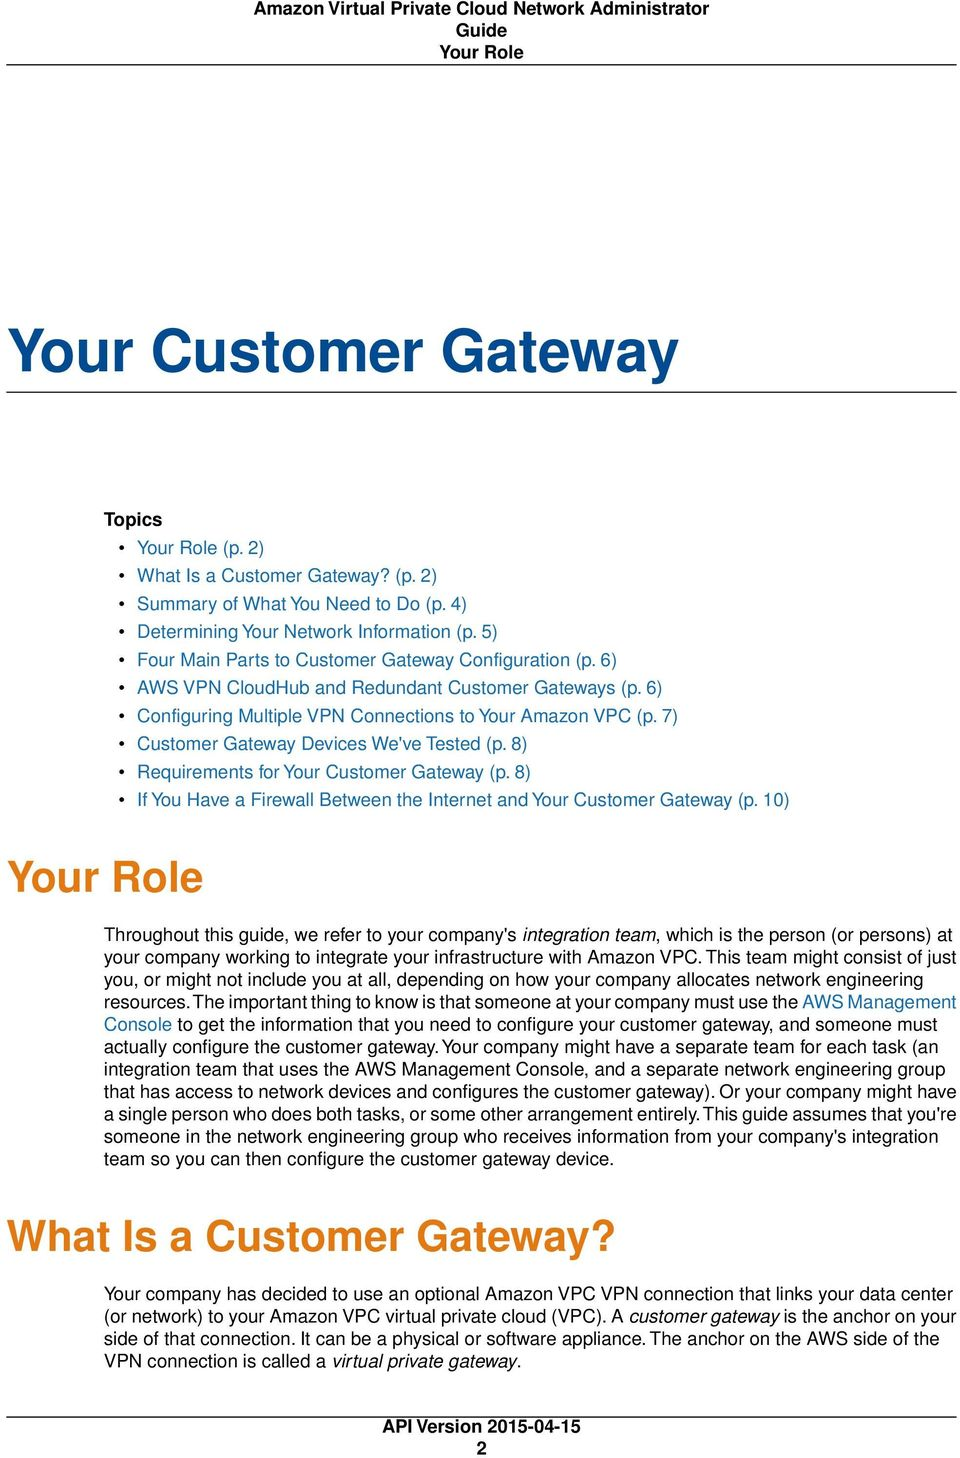 7) Customer Gateway Devices We've Tested (p. 8) Requirements for Your Customer Gateway (p. 8) If You Have a Firewall Between the Internet and Your Customer Gateway (p.